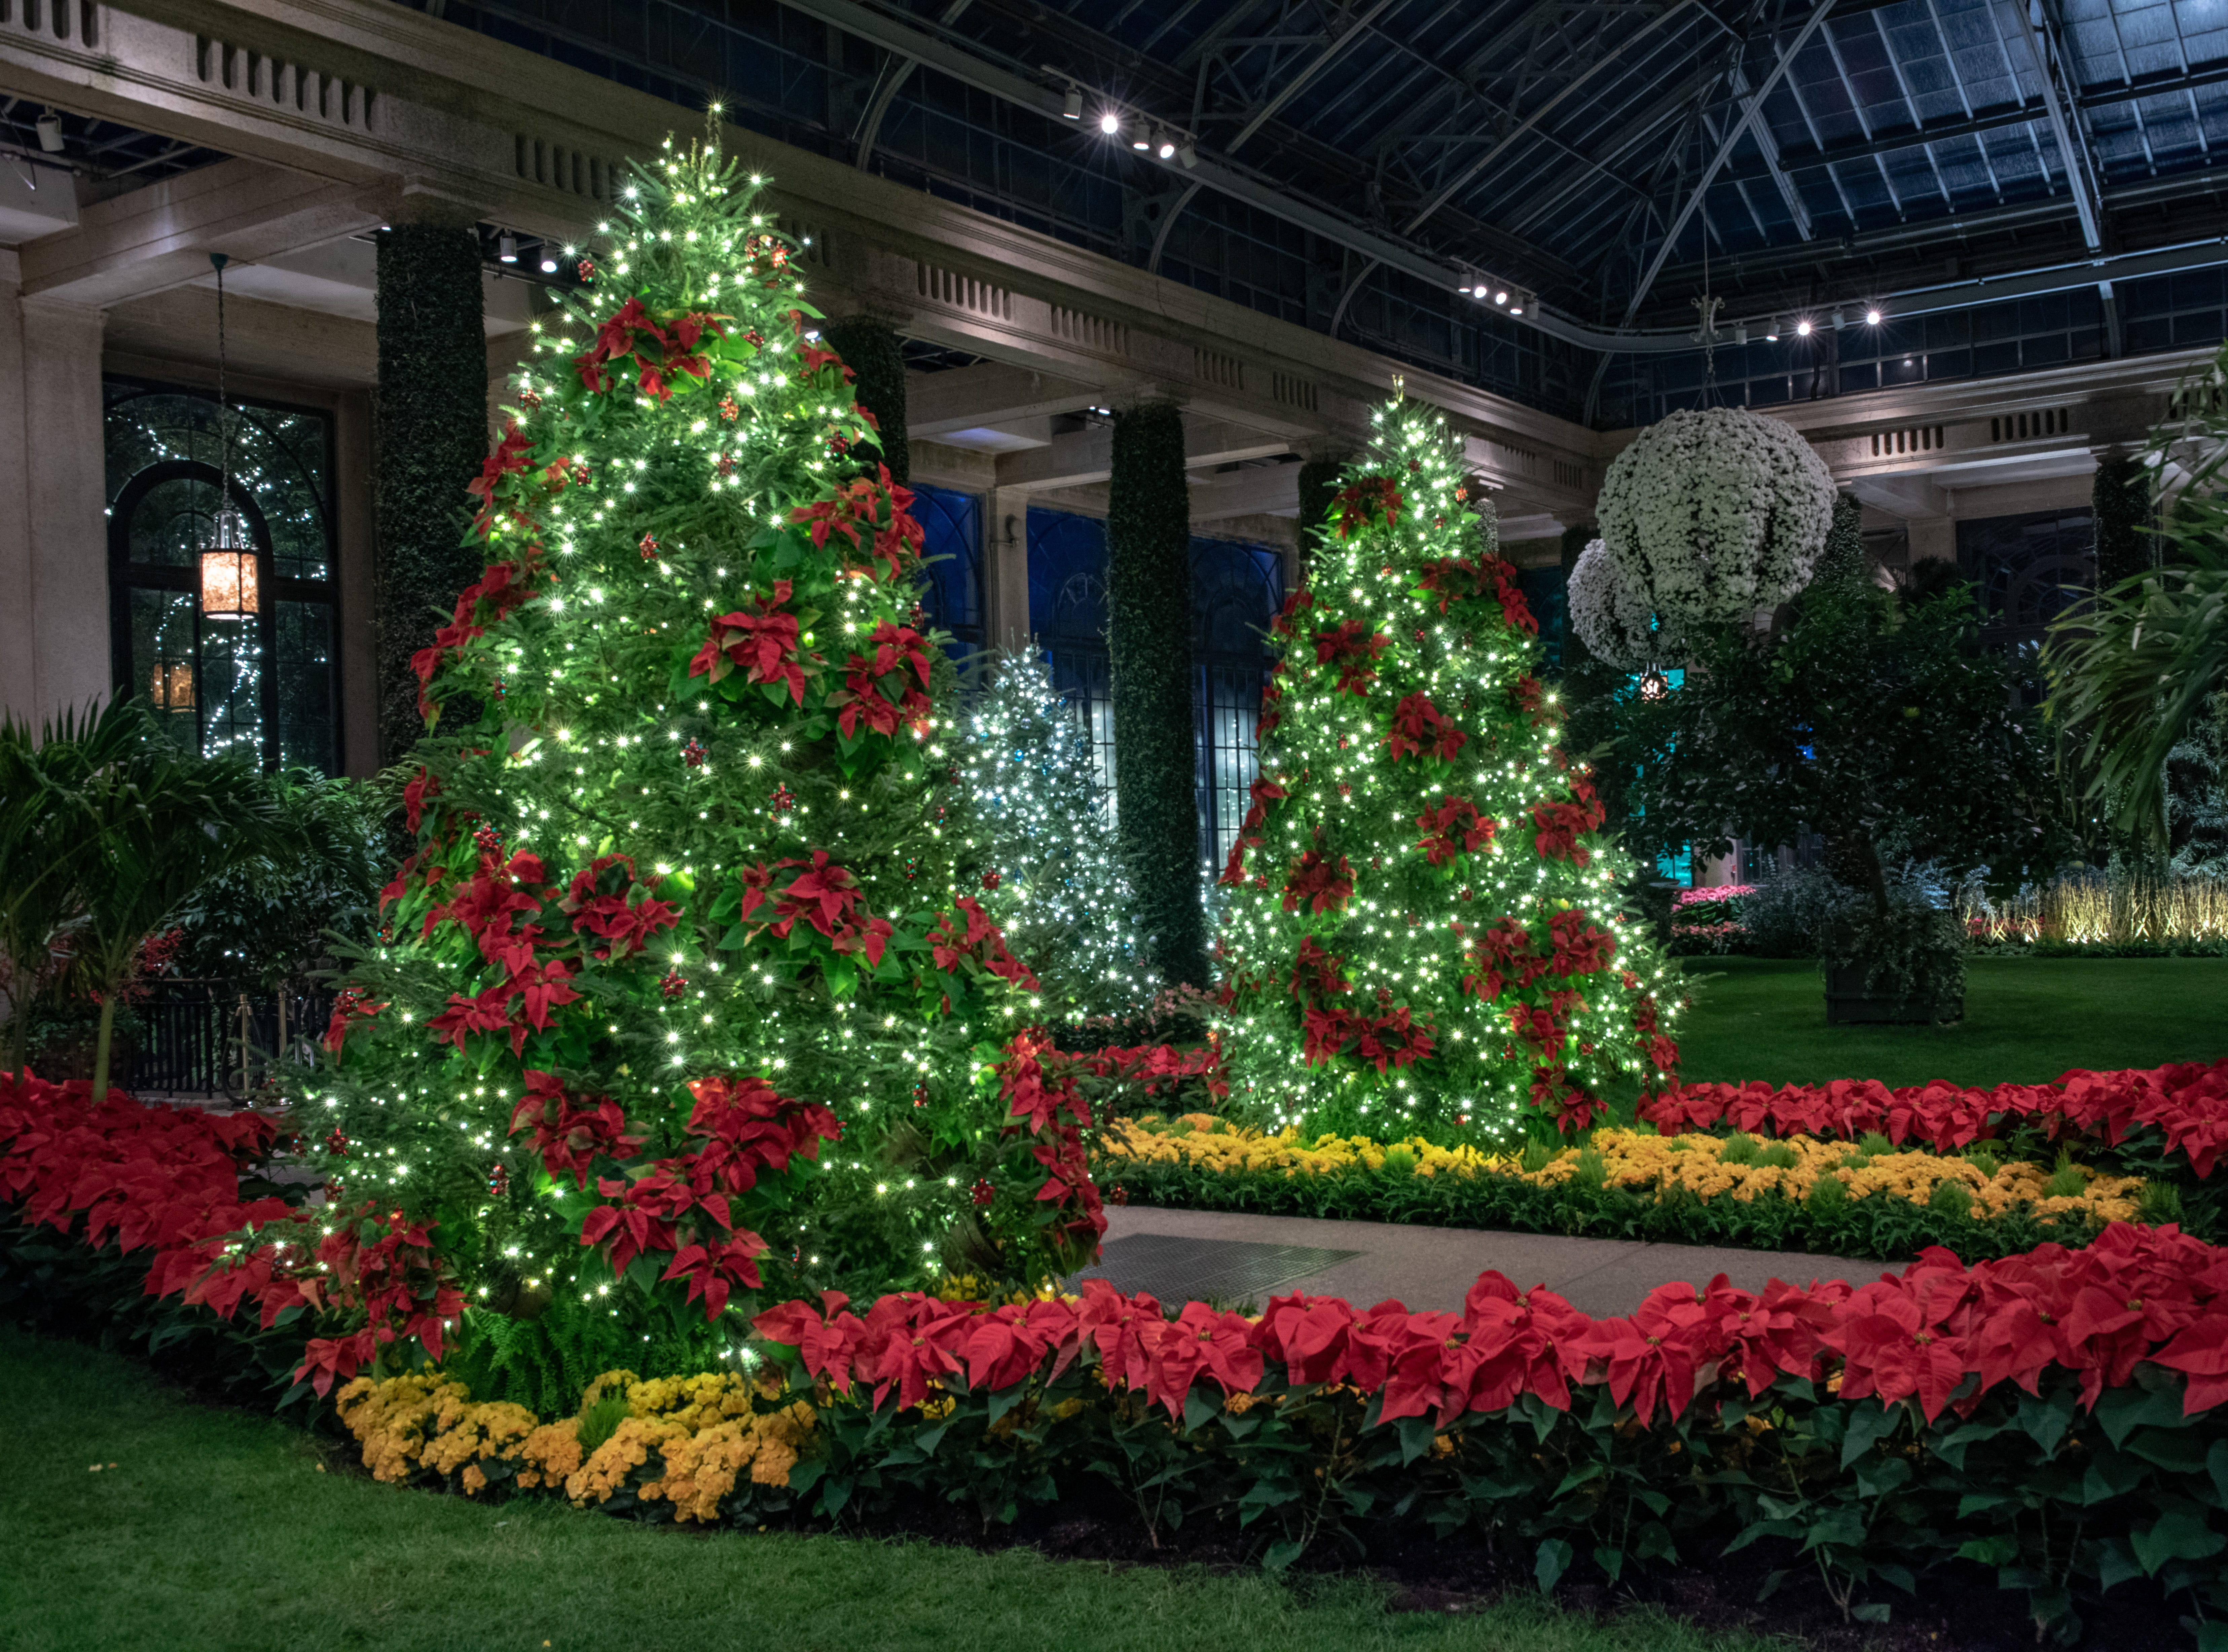 Trees studded with poinsettias welcome guests to the conservatory during A Longwood Christmas.